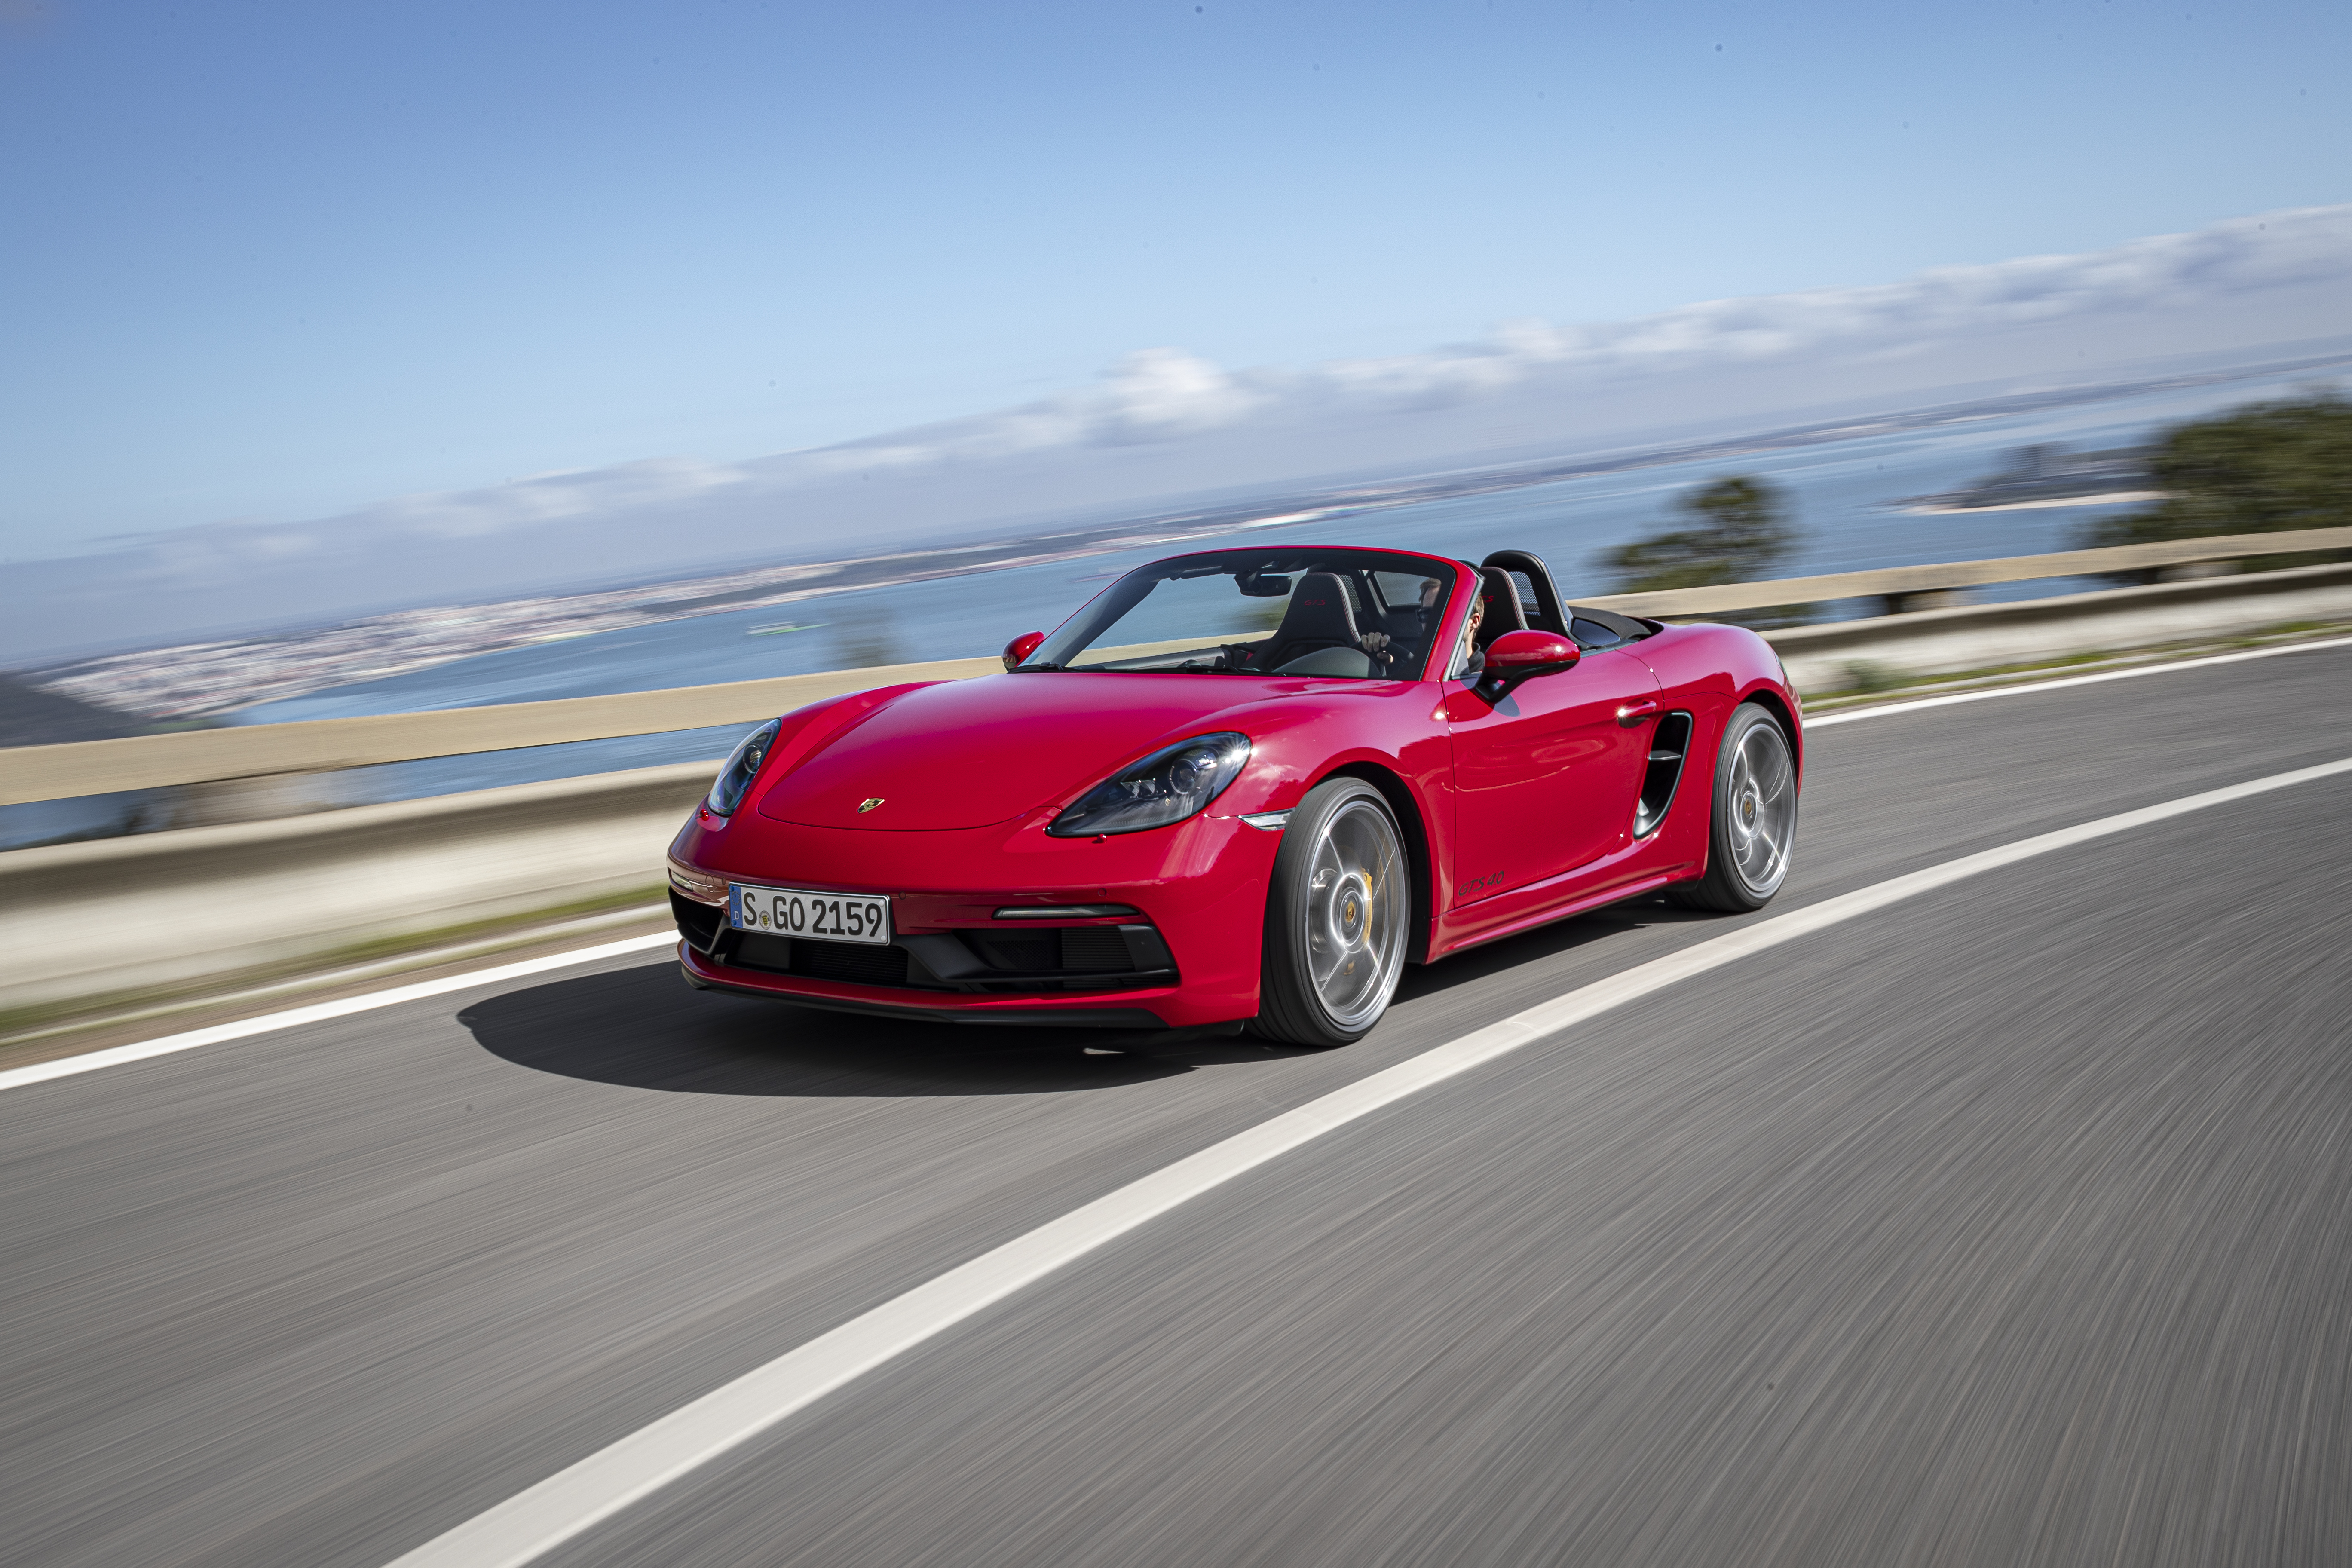 2020 Porsche 718 Boxster GTS 4.0 - HD Pictures, Videos ...